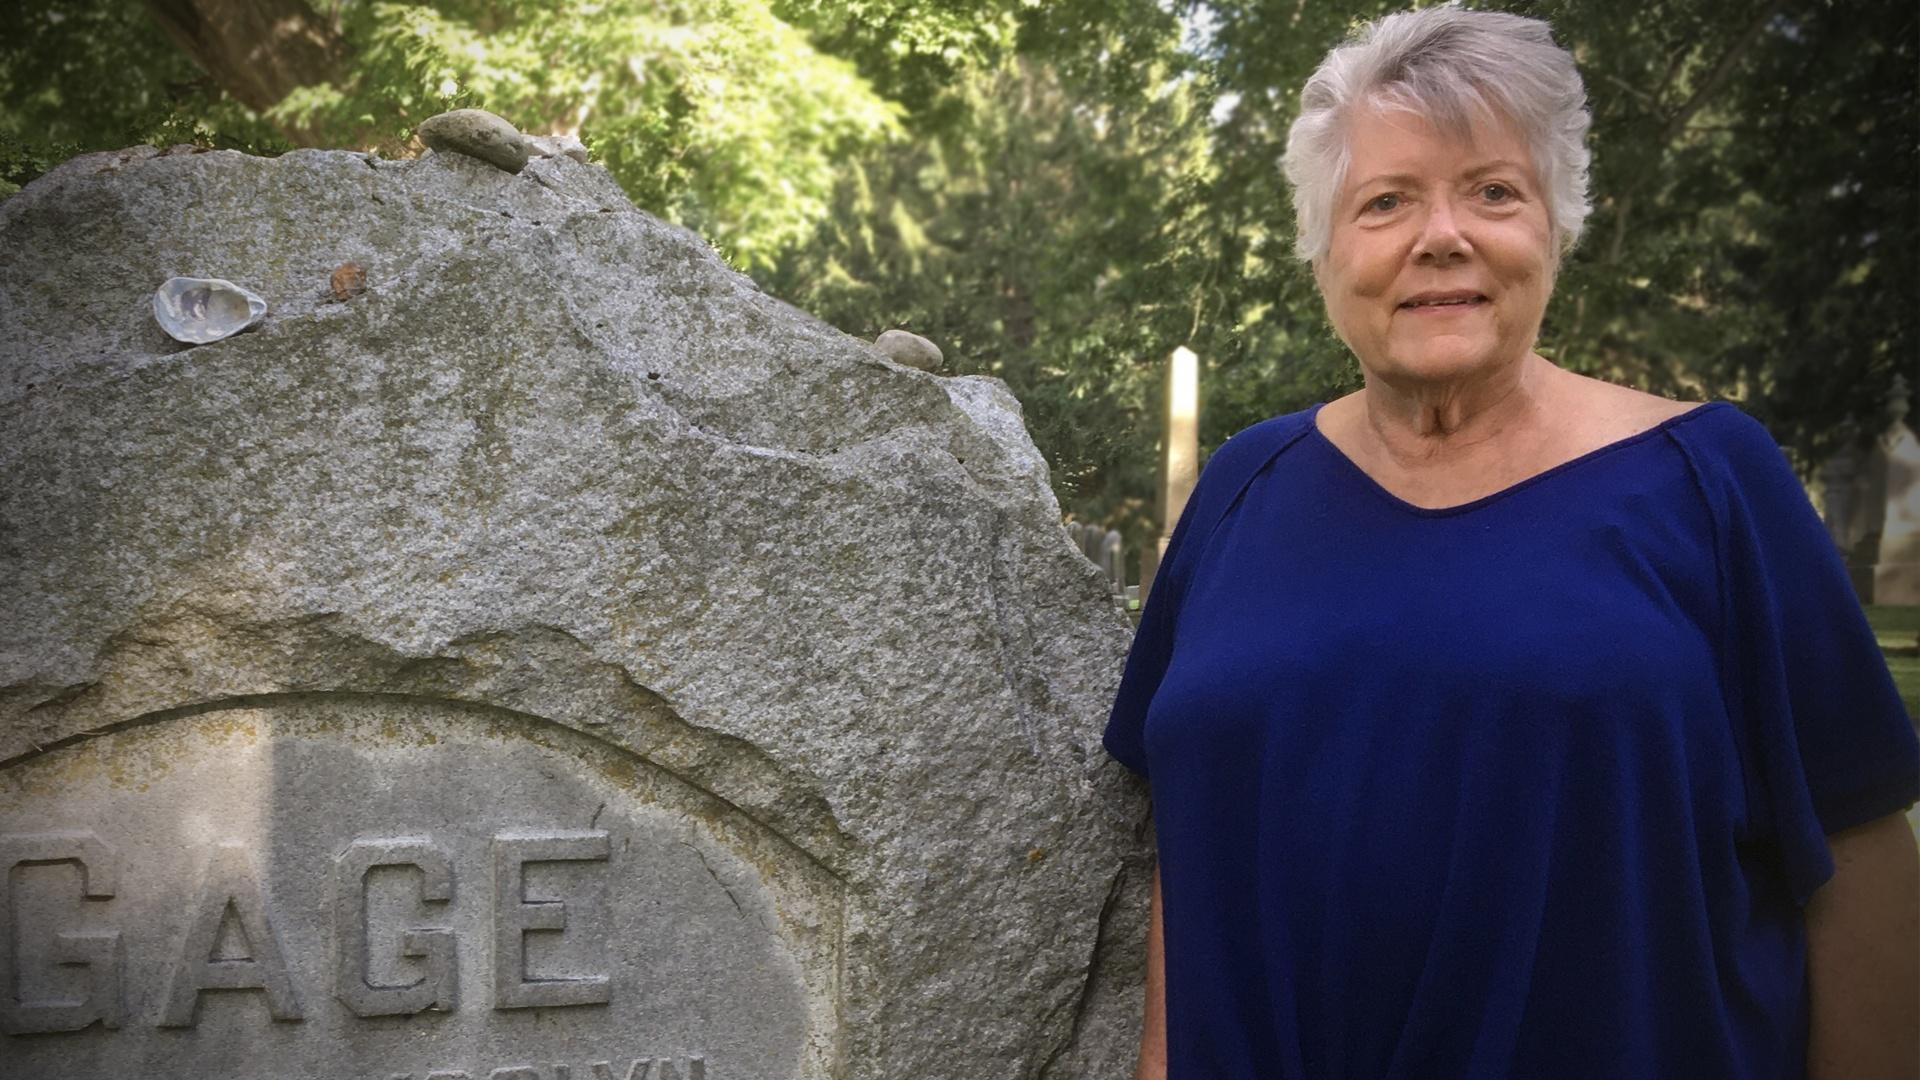 Sally Roesch Wagner stands in front of  Matilda Joslyn Gage's grave